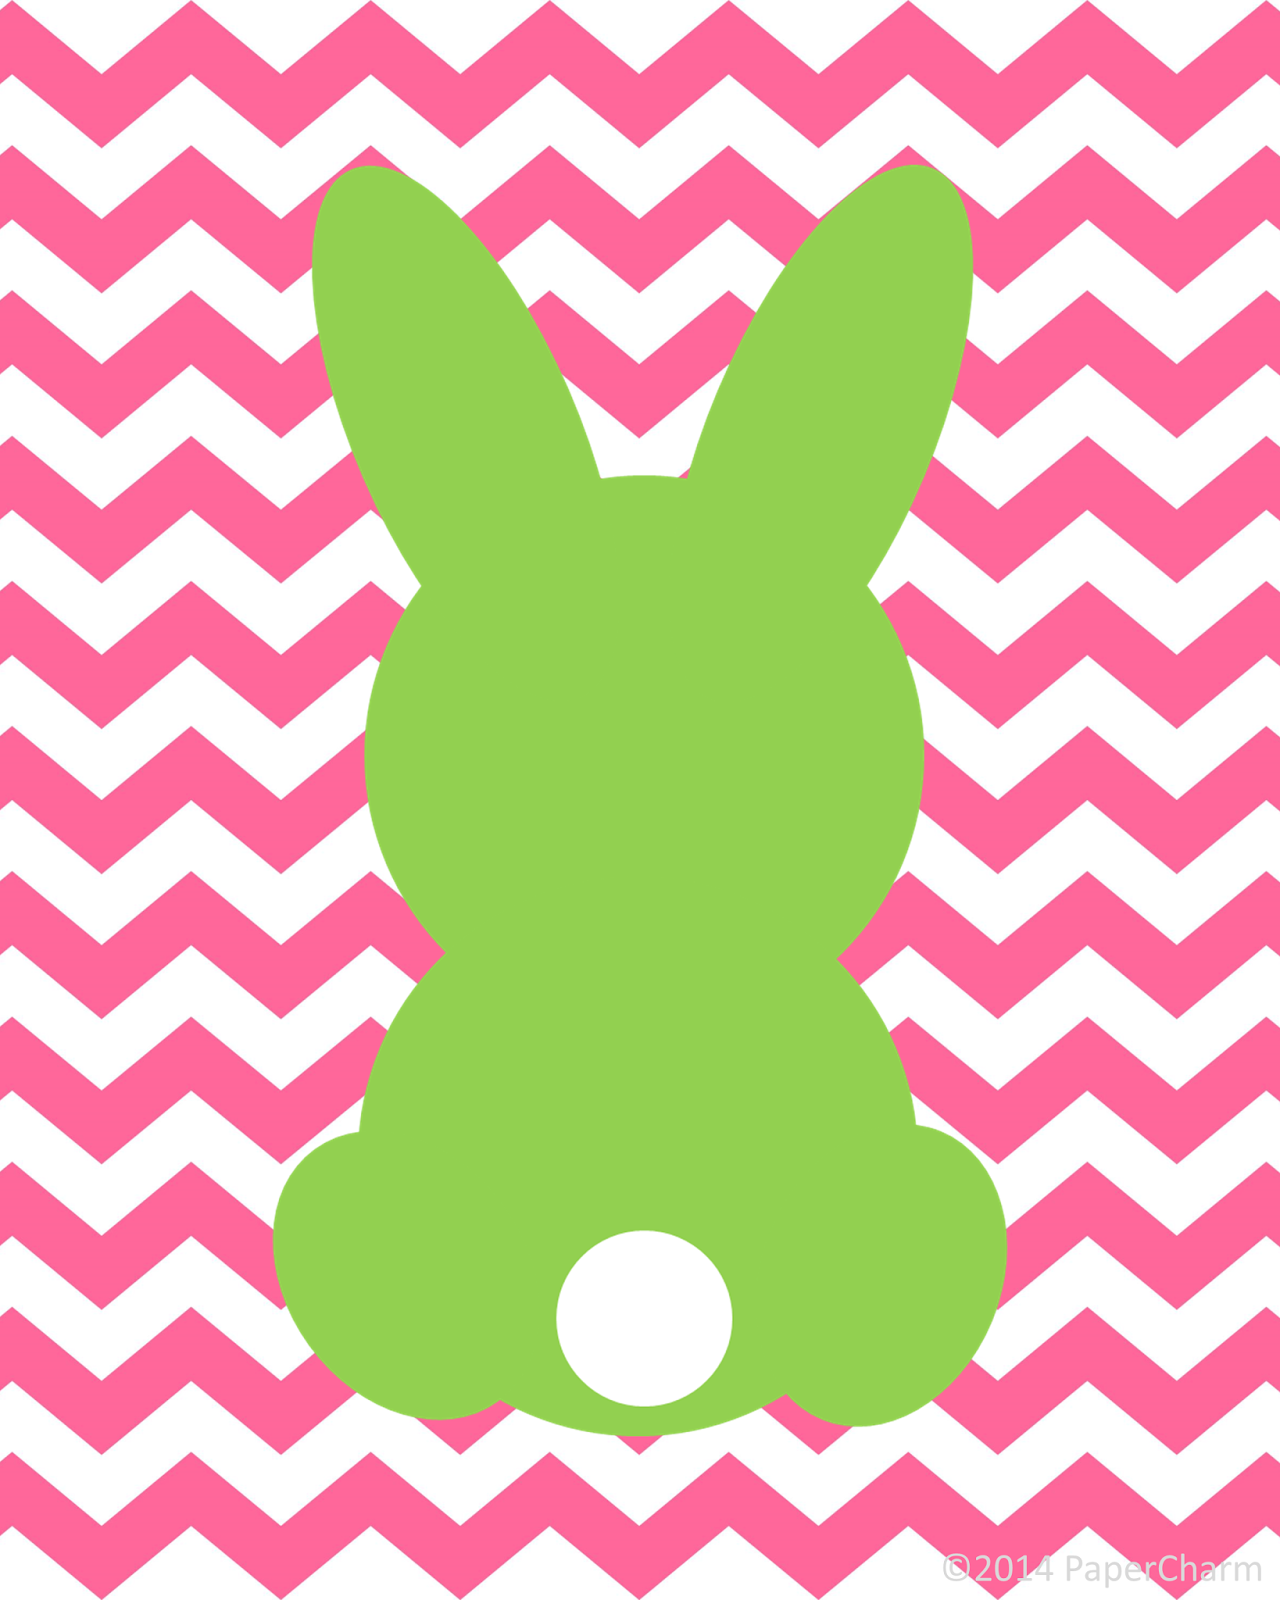 1280x1600 Papercharm Free Bunny Silhouette Easter Printable Art